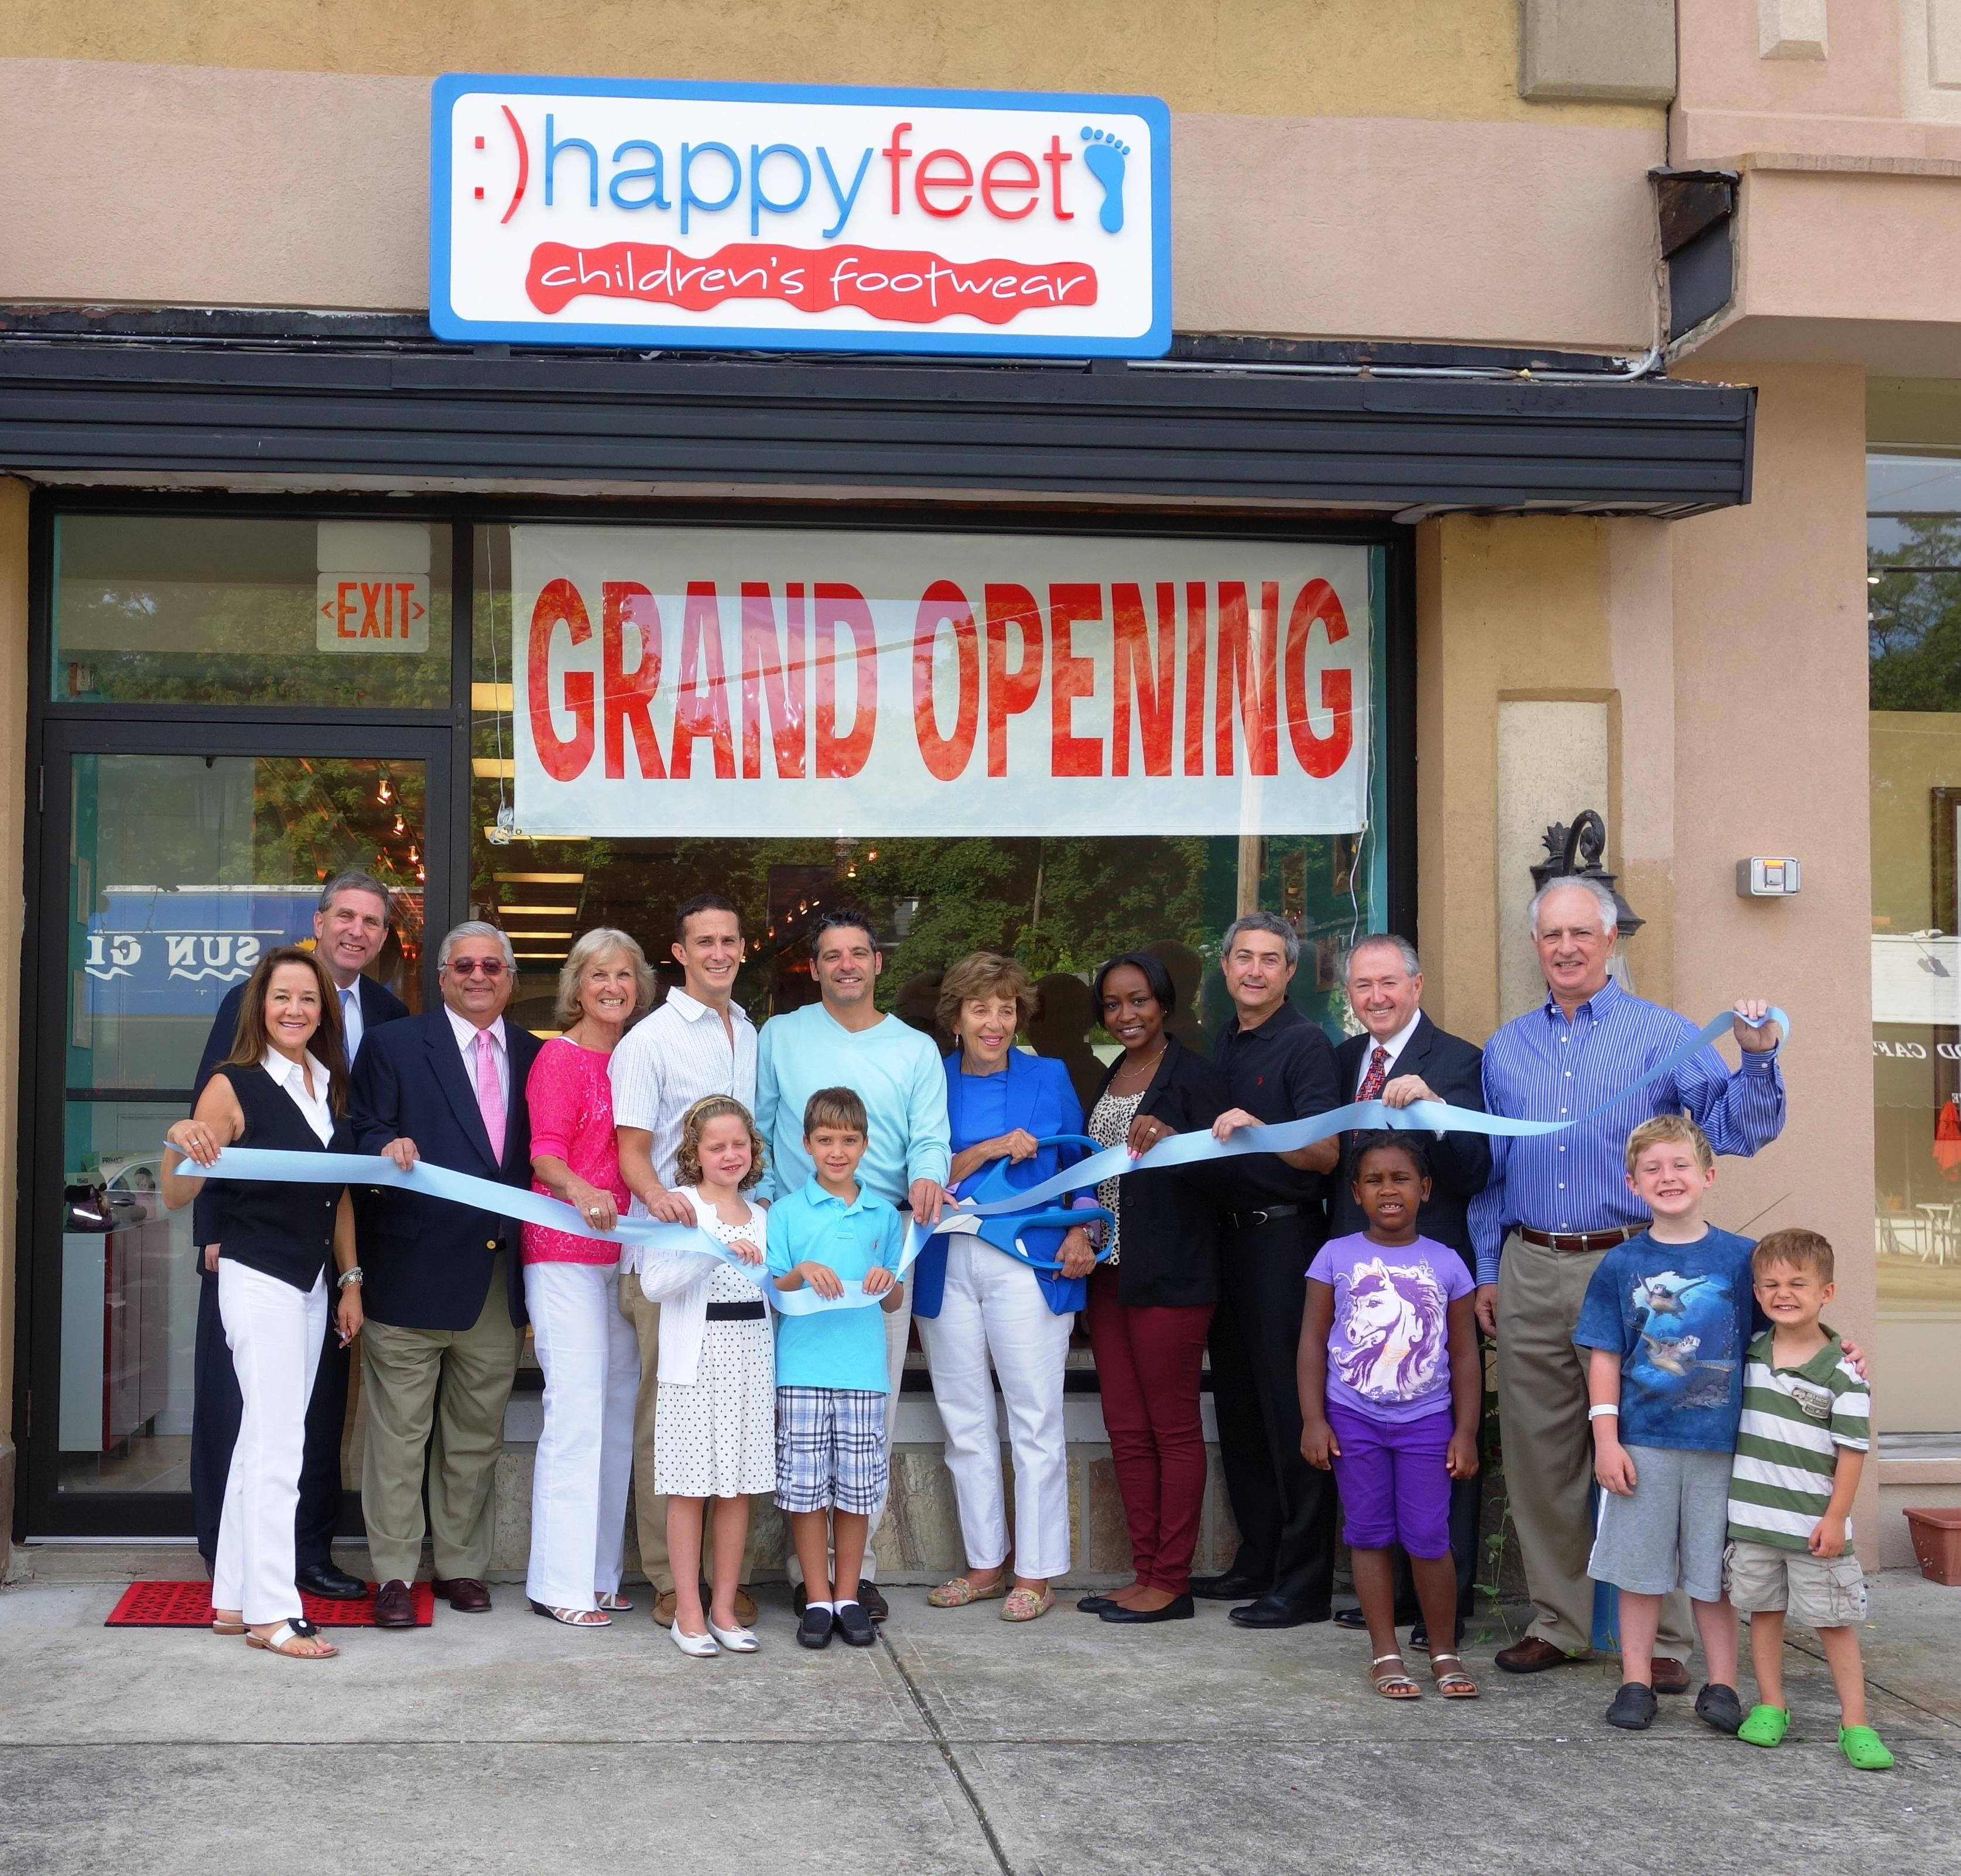 e377e2553b3fc7722c8f_happy_feet_grand_opening.jpg